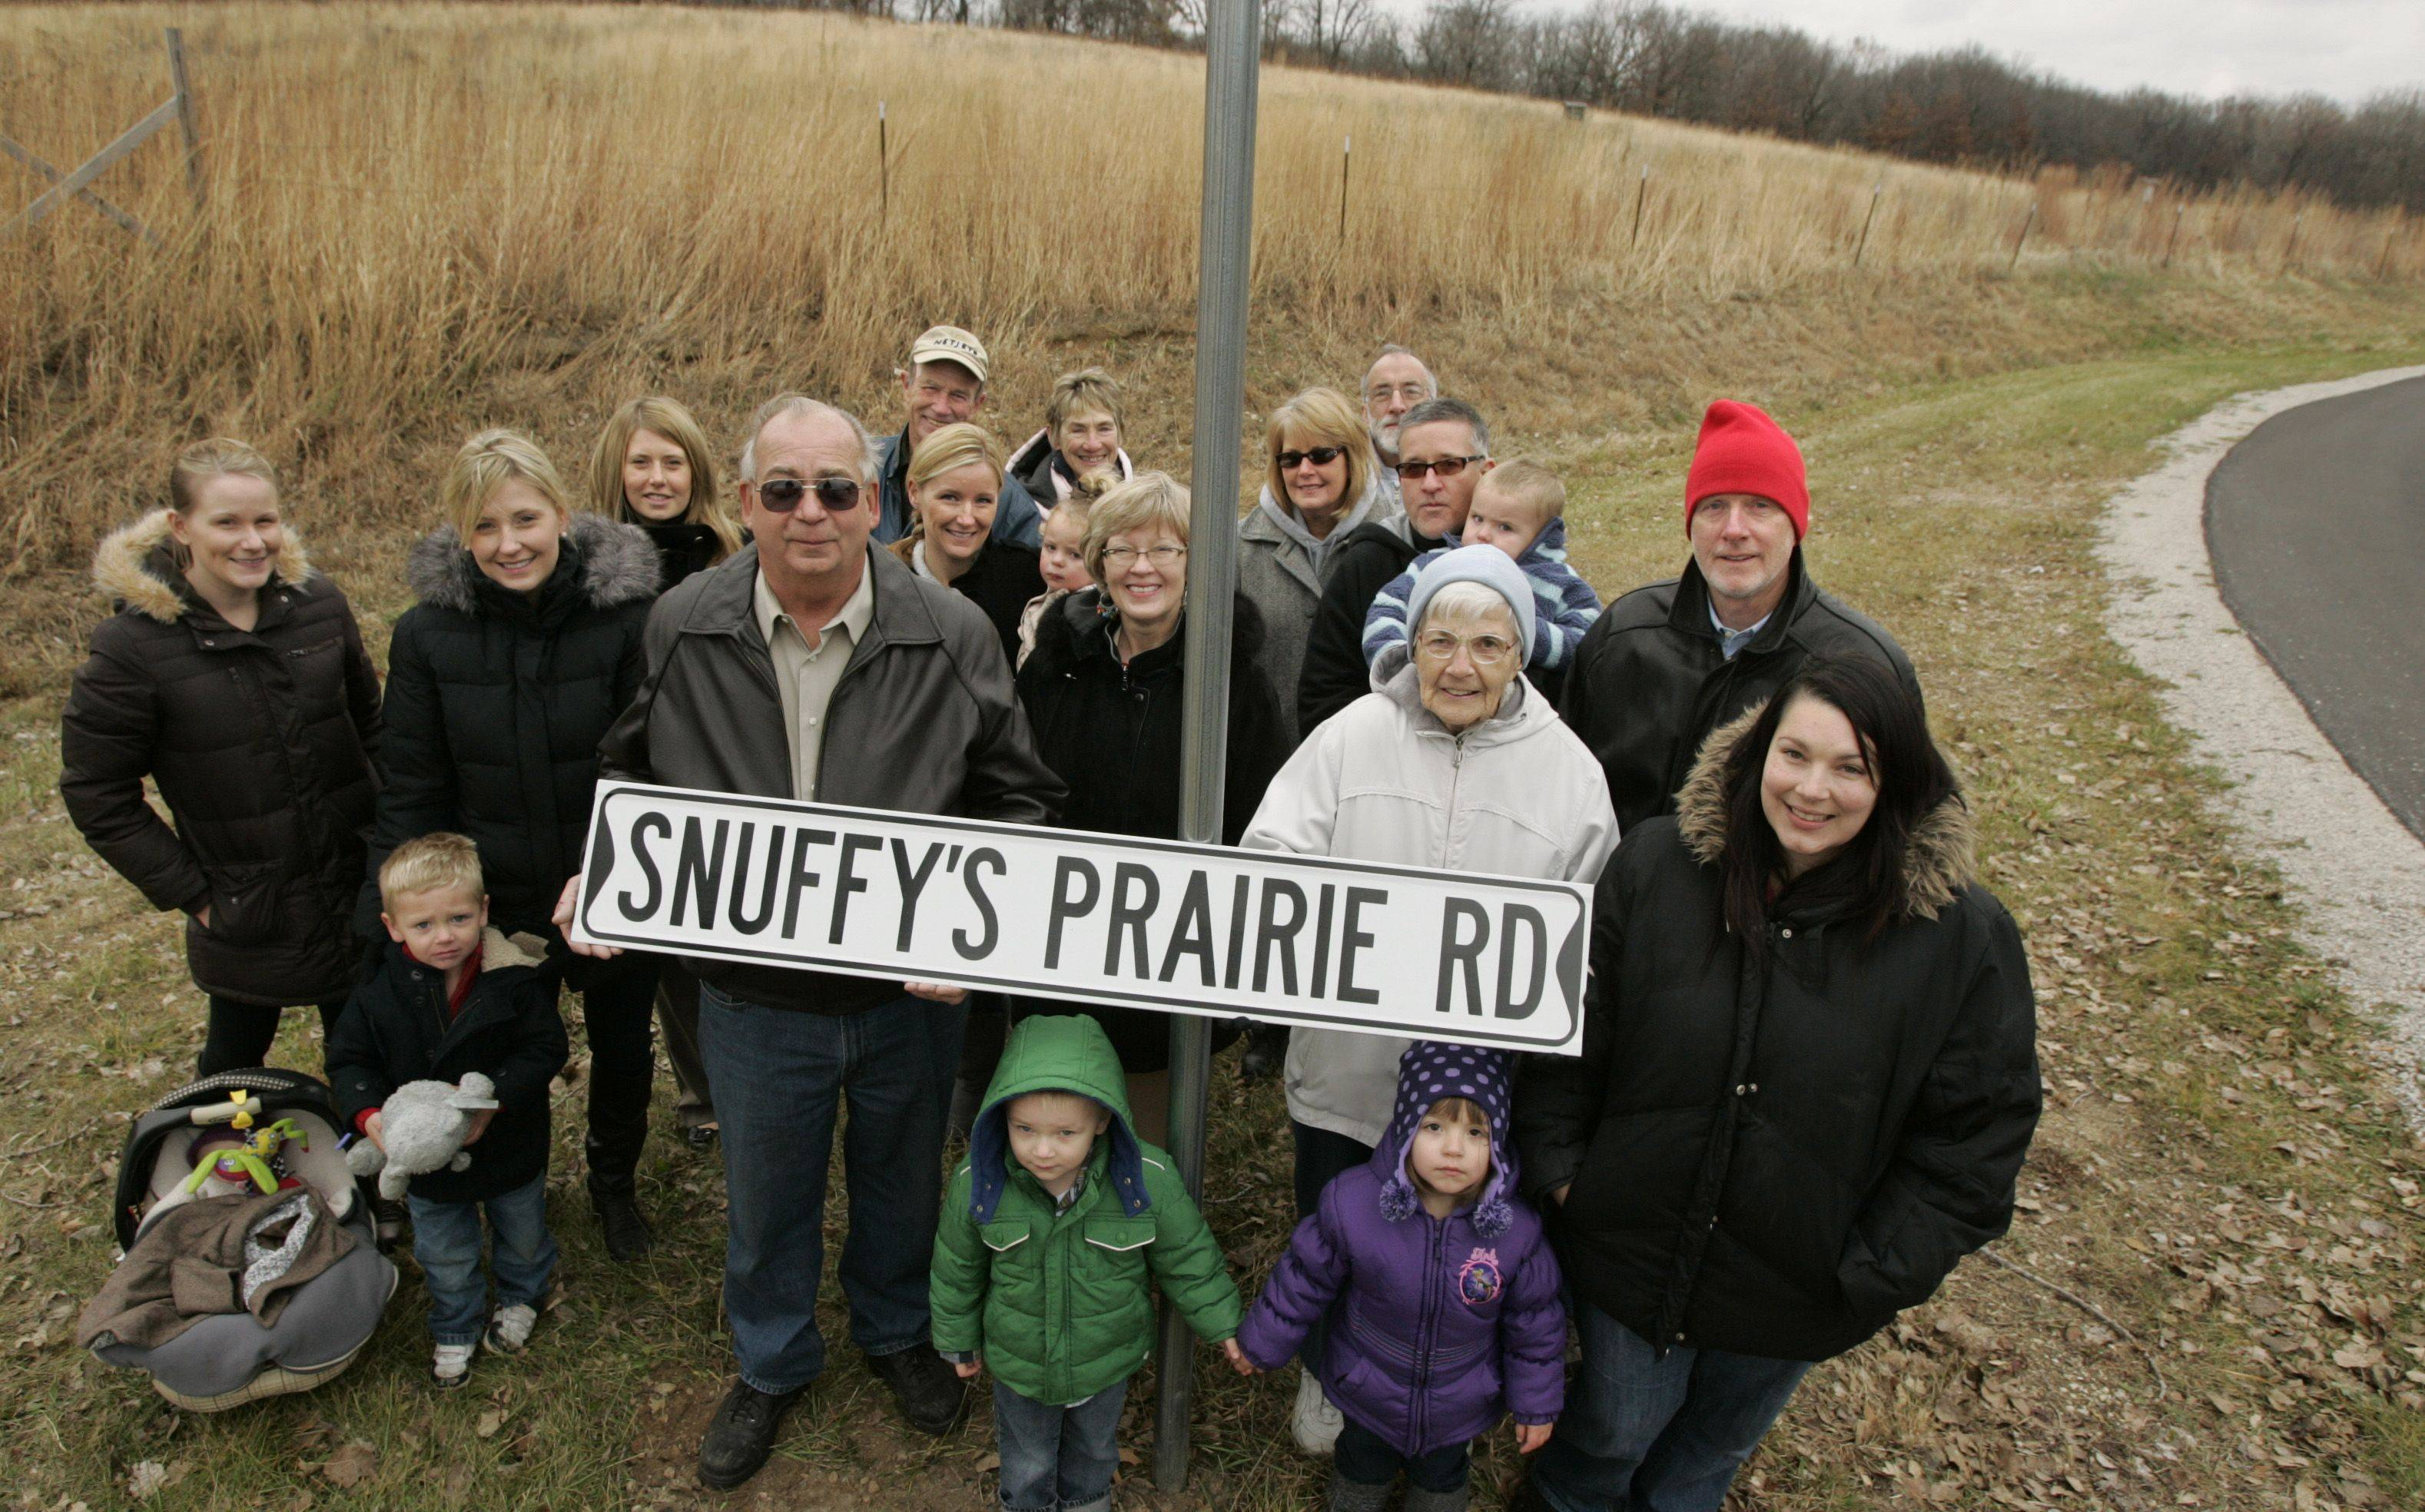 "Don ""Snuffy"" Smith's family, including several great-grandchildren, gathers at the prairie that bears his name in Dundee Township in honor of the street being re-named Snuffy's Prairie Road. Holding the new street sign are Don's widow Betty Smith and Dundee Township Highway Commissioner Larry Braasch. Nearby resident Steve Keibler and Dundee Township Supervisor Sue Harney, also in the photo, were instrumental in getting the road re-named for Don who was a lifelong resident of the township. The road was previously named Hickory Avenue. According to township rules, every resident of the subdivision needed to sign off on the new street name, and Keibler, in rear with baseball cap, got everyone on board with the change."